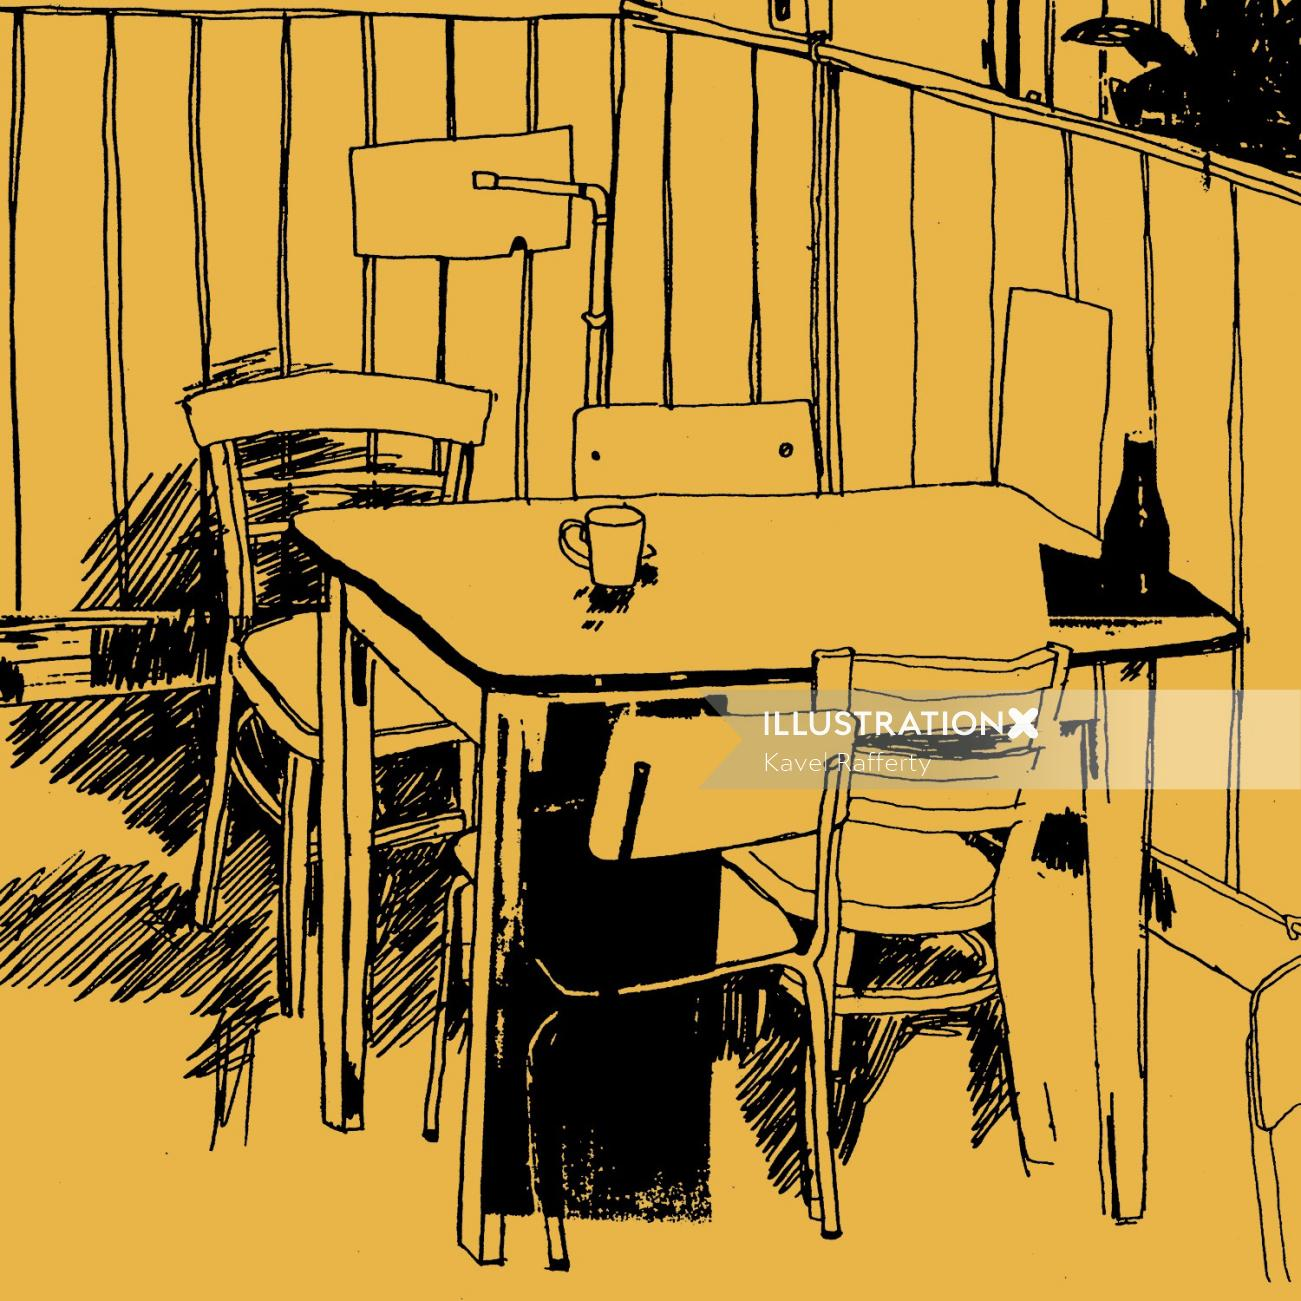 Line art of cafe table and chairs